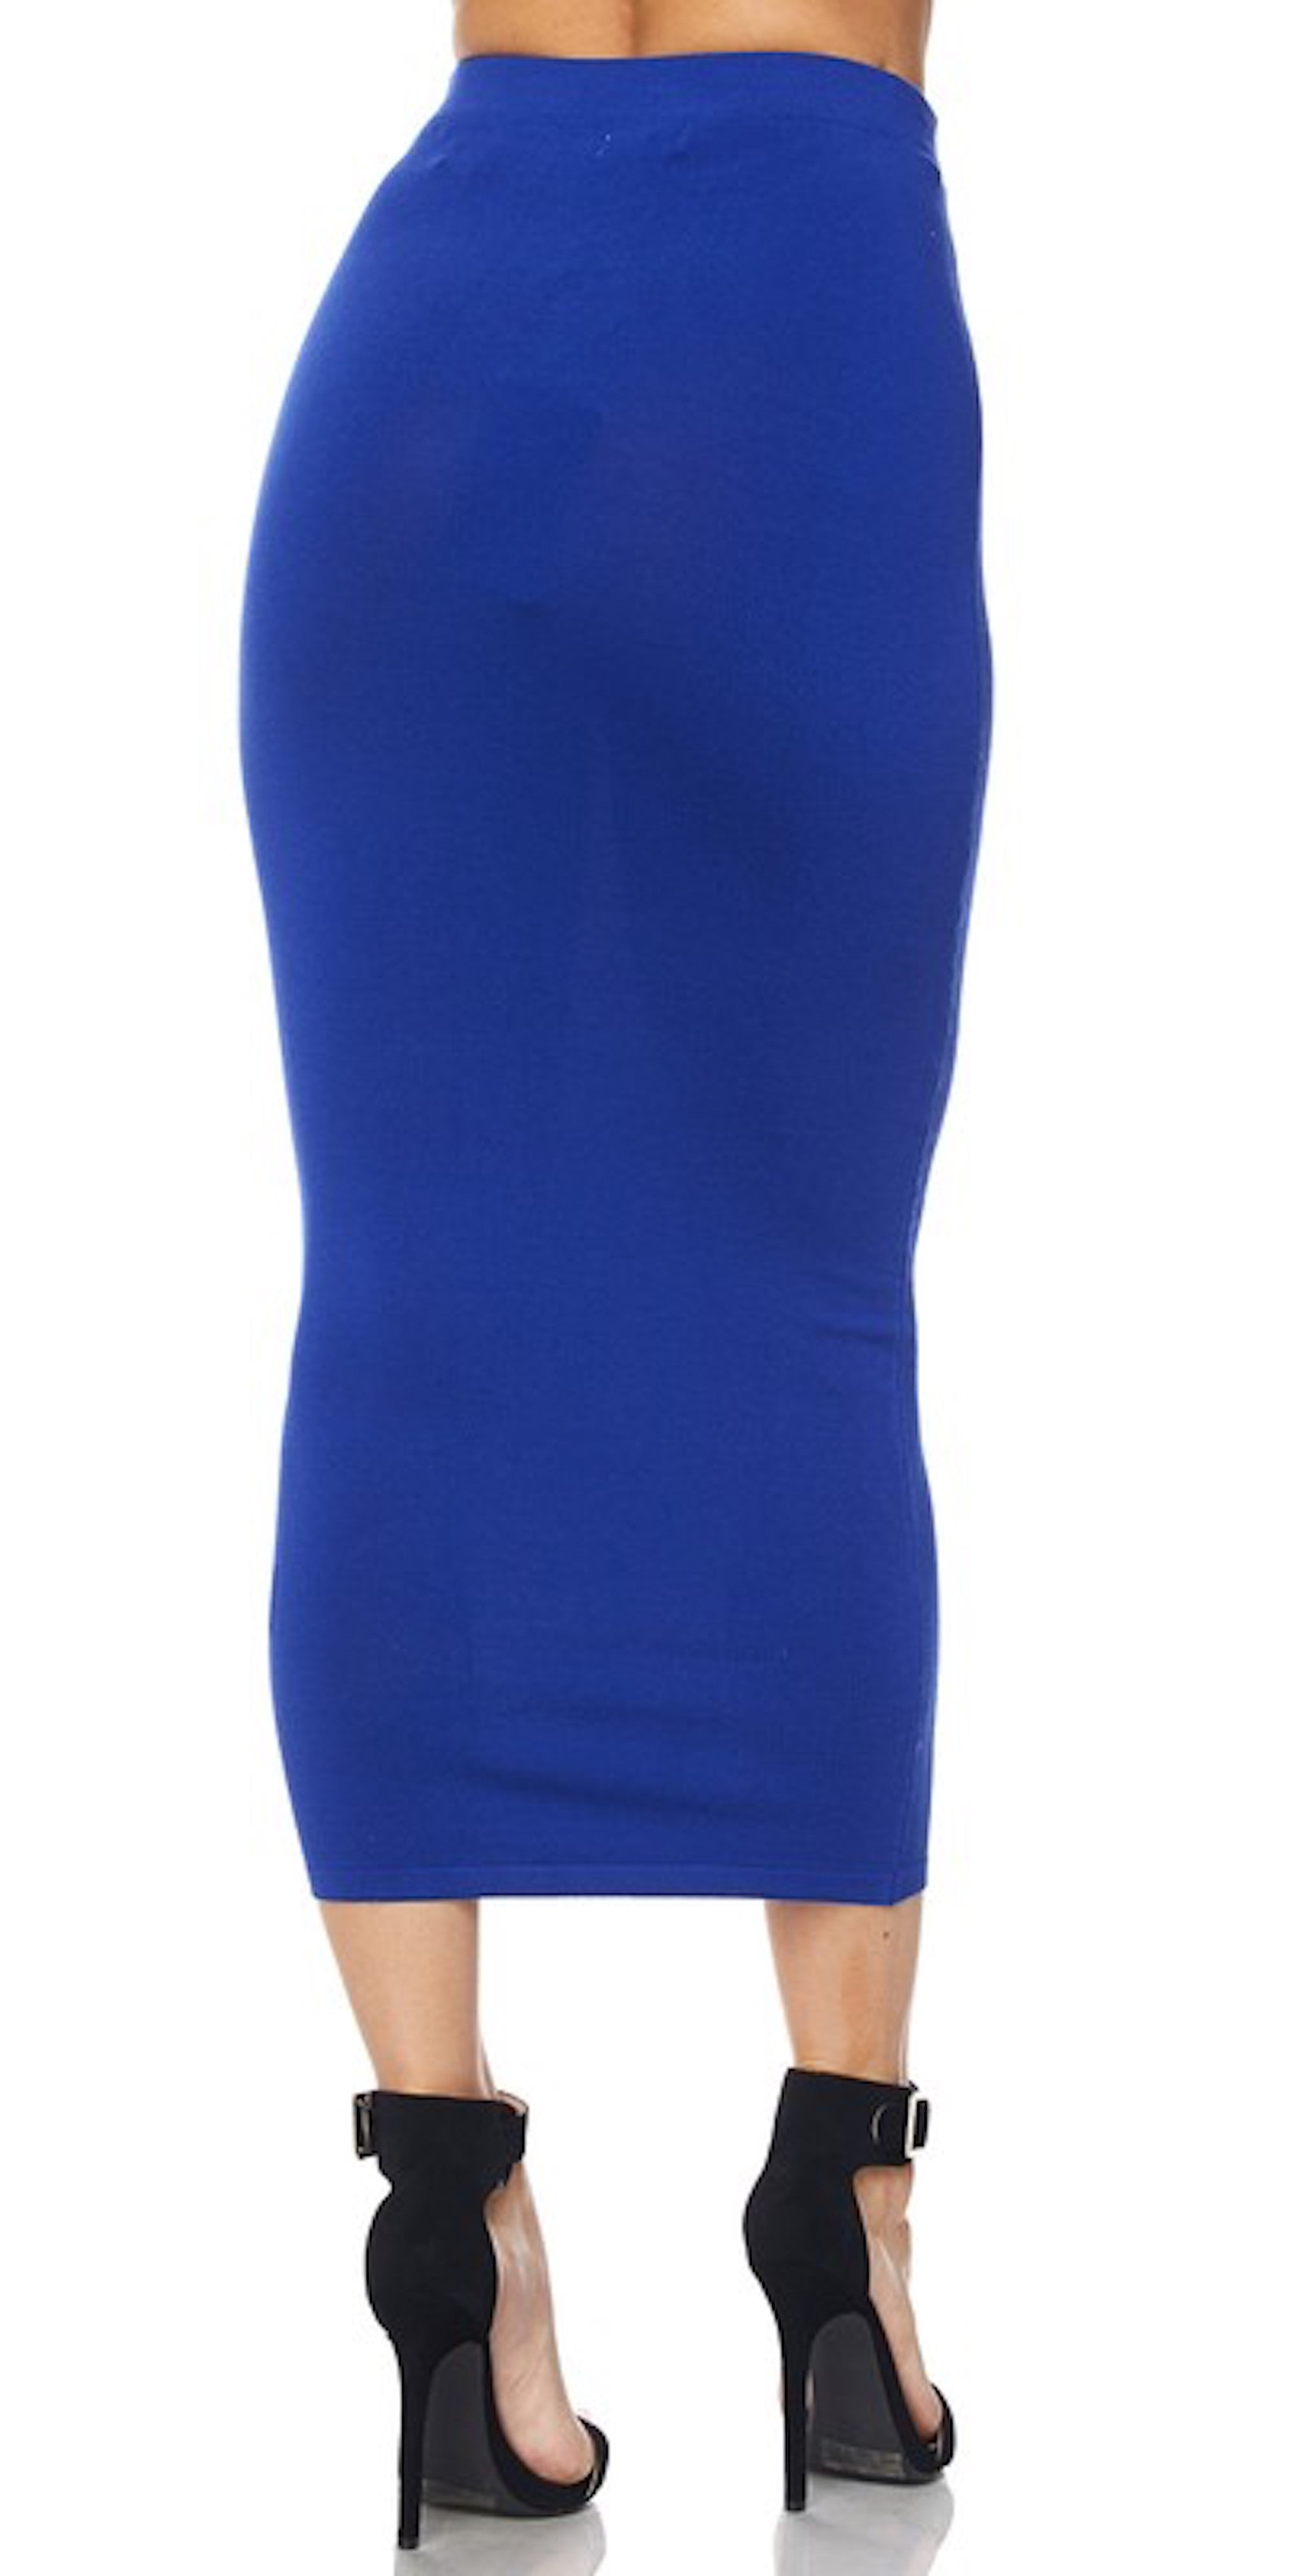 Royal Blue Long Pencil Skirt